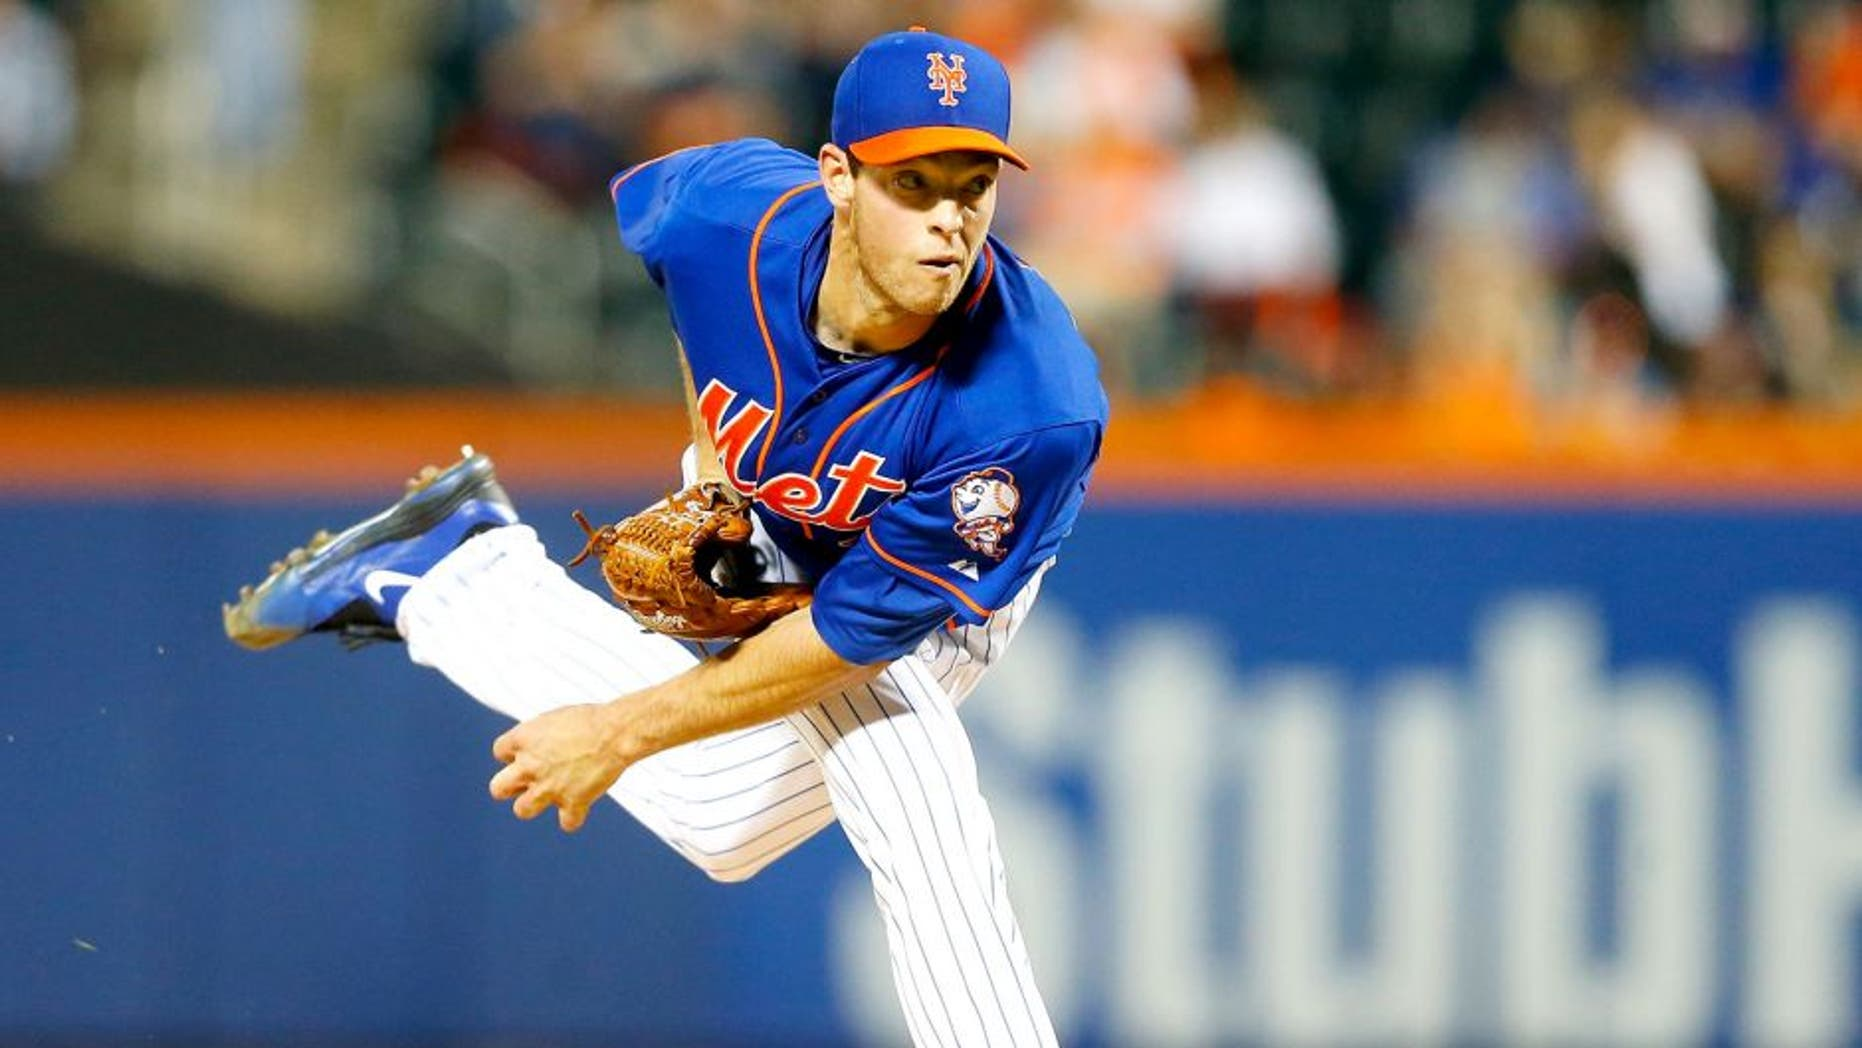 NEW YORK, NY - SEPTEMBER 18: (NEW YORK DAILIES OUT) Steven Matz #32 of the New York Mets pitches in the first inning against the New York Yankees at Citi Field on September 18, 2015 in the Flushing neighborhood of the Queens borough of New York City. The Mets defeated the Yankees 5-1. (Photo by Jim McIsaac/Getty Images)